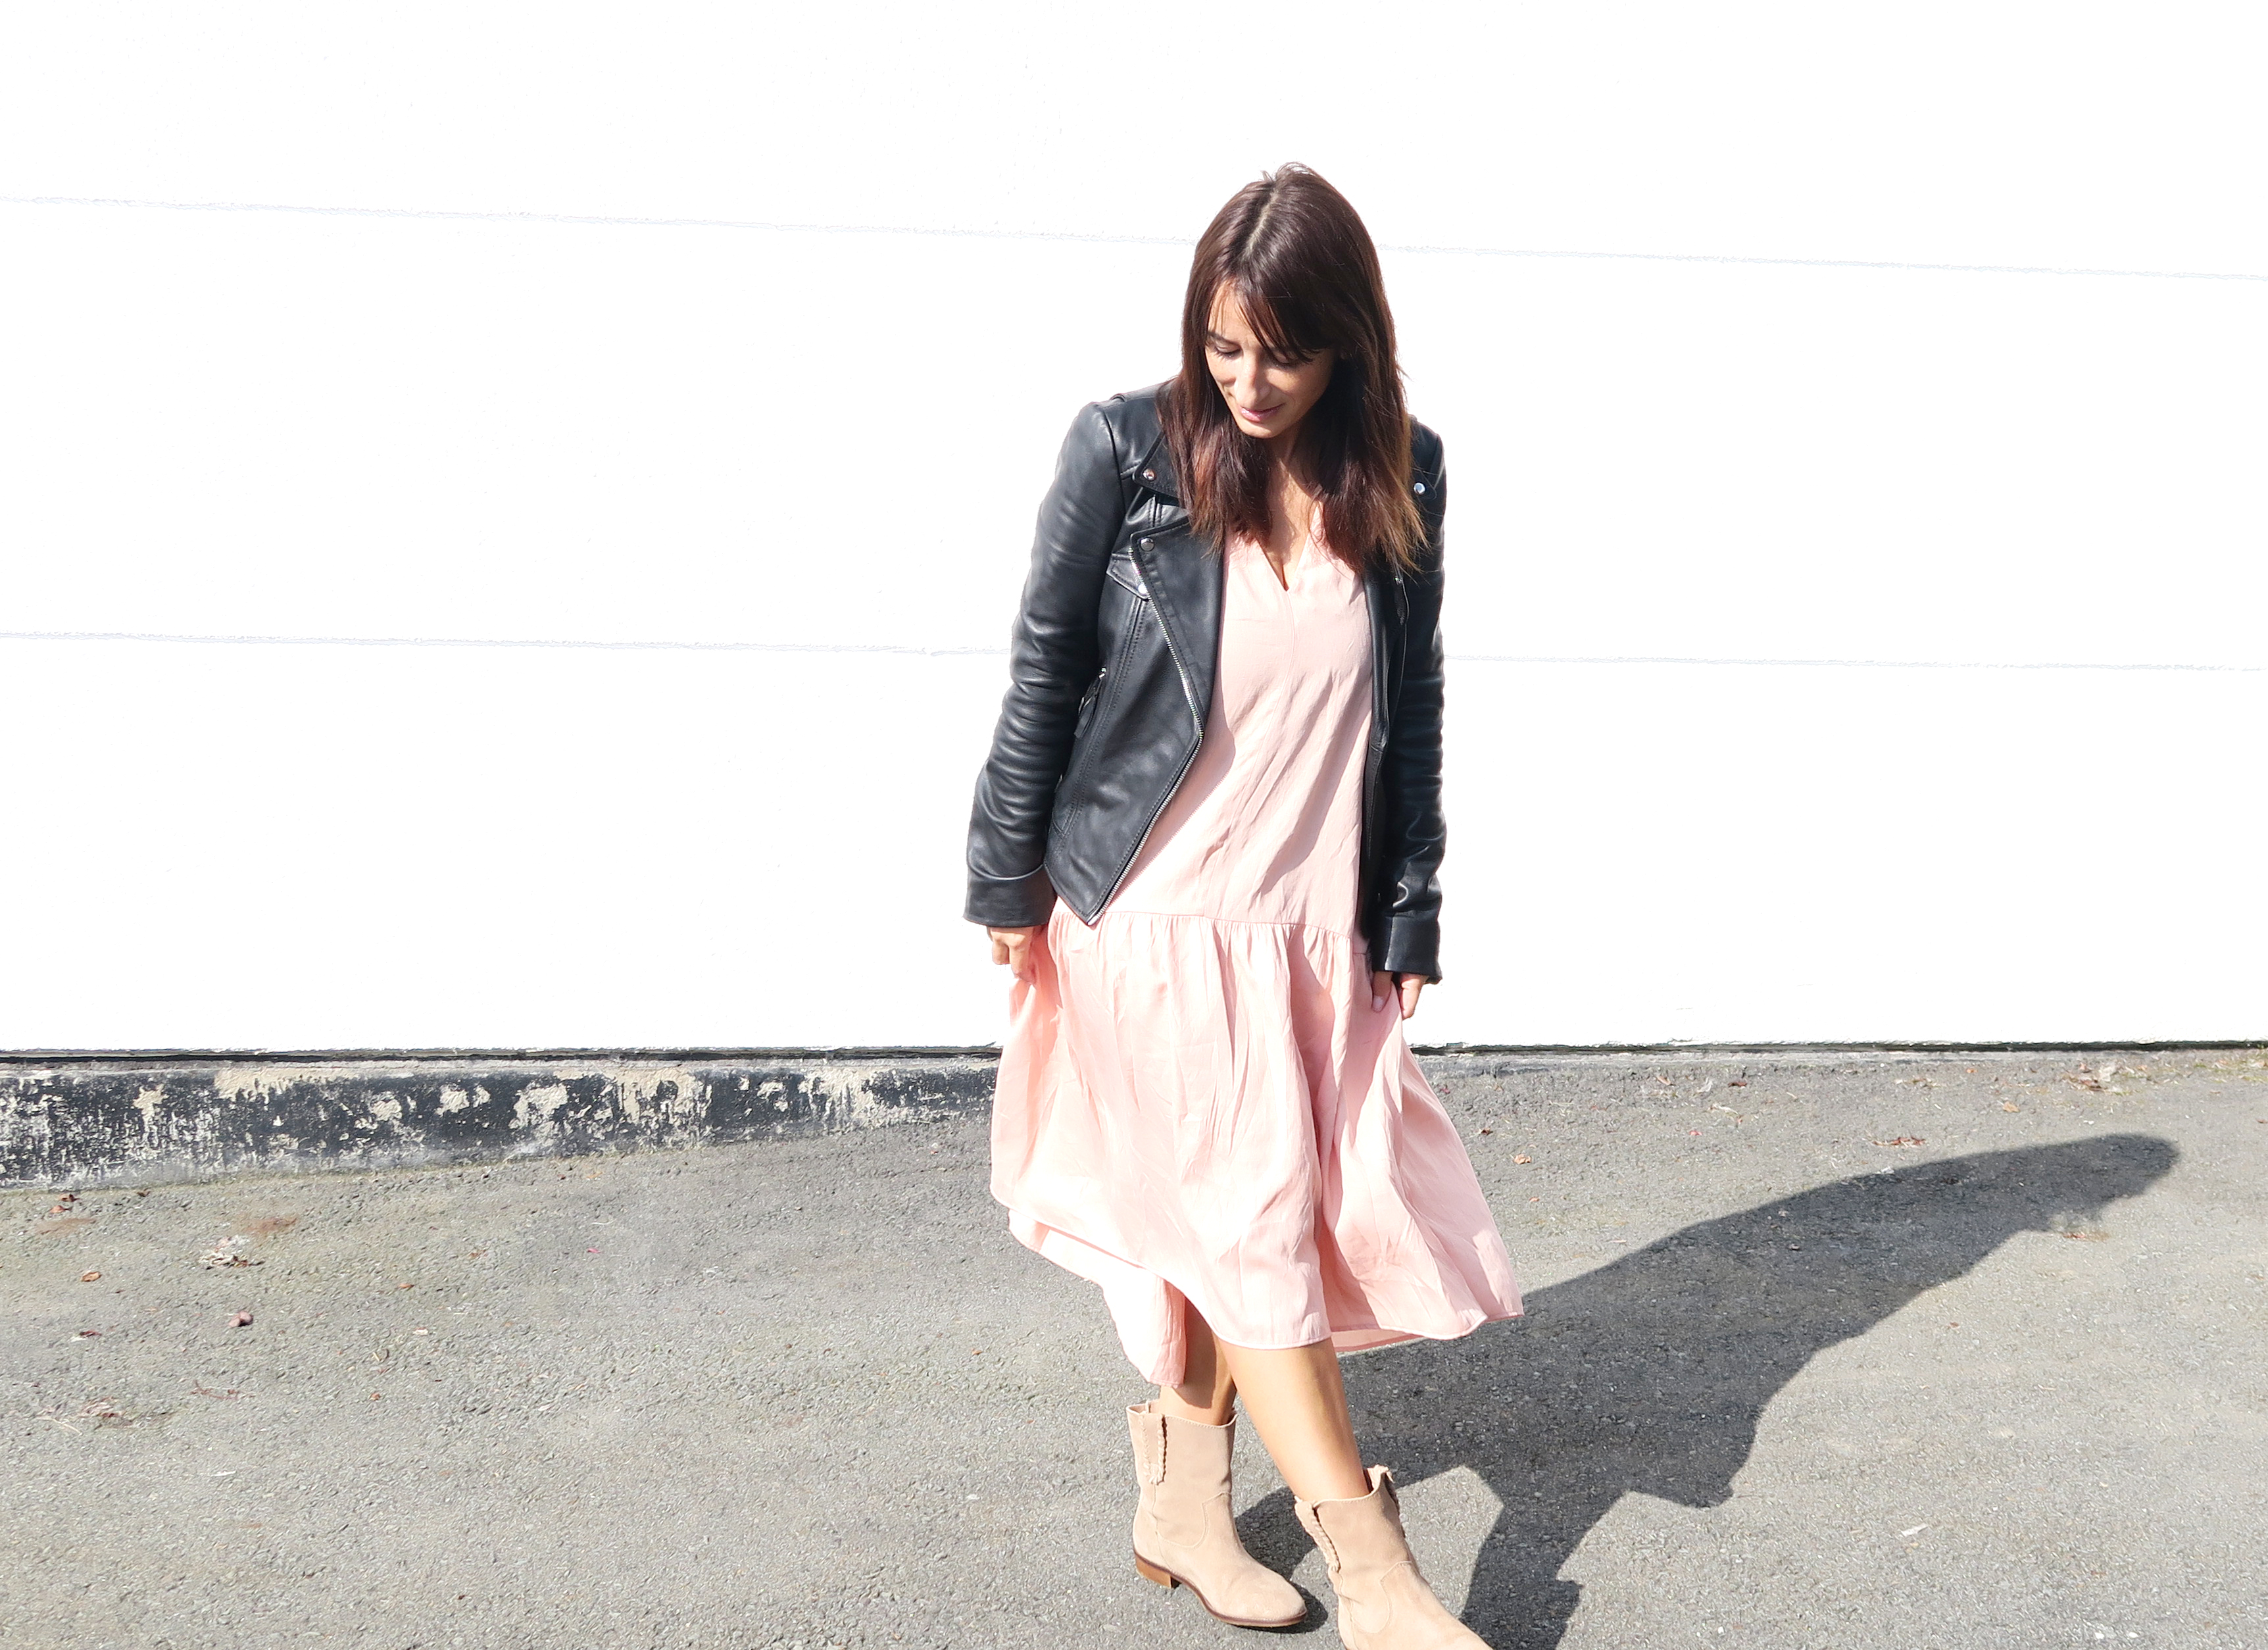 Modesalat-blogger-streetstyle-leather-bloggerstyle-ruffles-dress-1